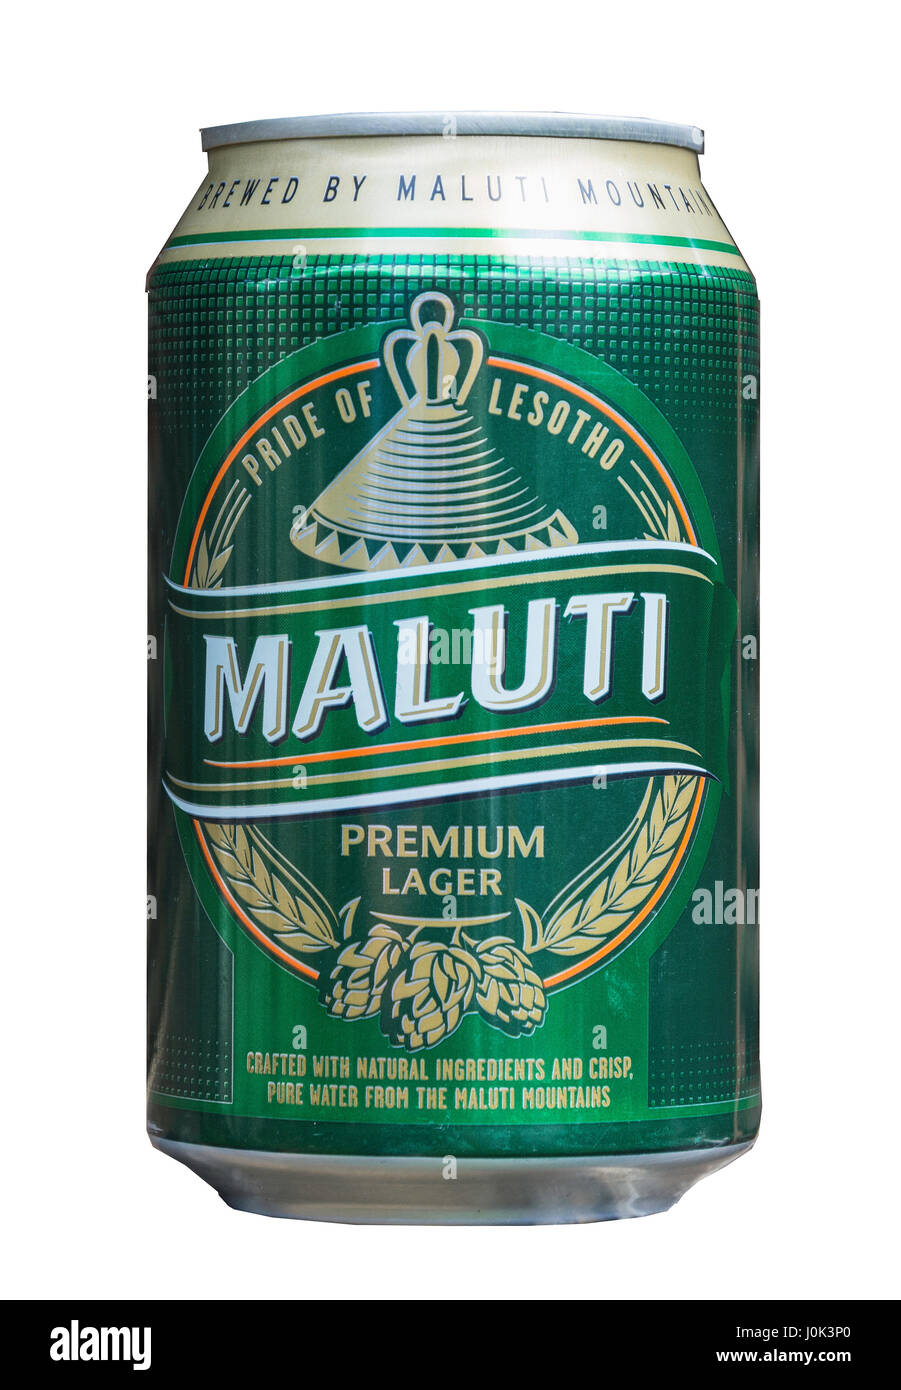 Can of local Maluti premium lager beer, Maseru, Maseru District, Kingdom of Lesotho - Stock Image